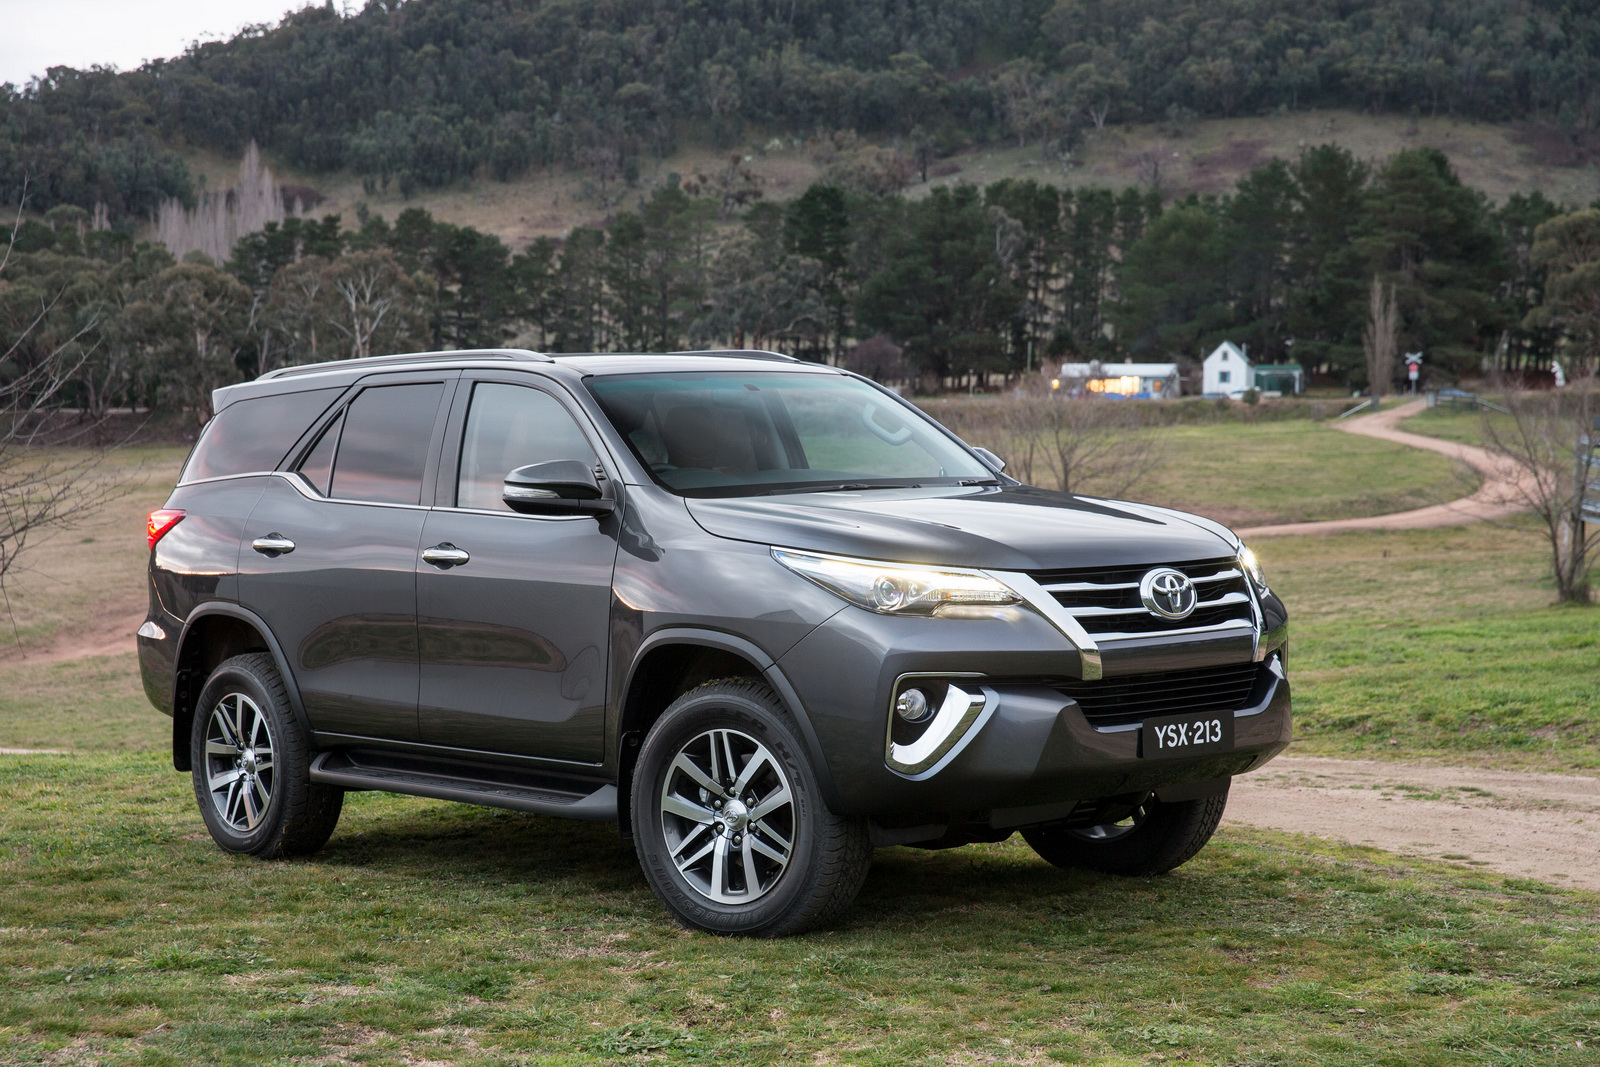 2018 Toyota Fortuner - Toyota 4 * 4 2018 , HD Wallpaper & Backgrounds